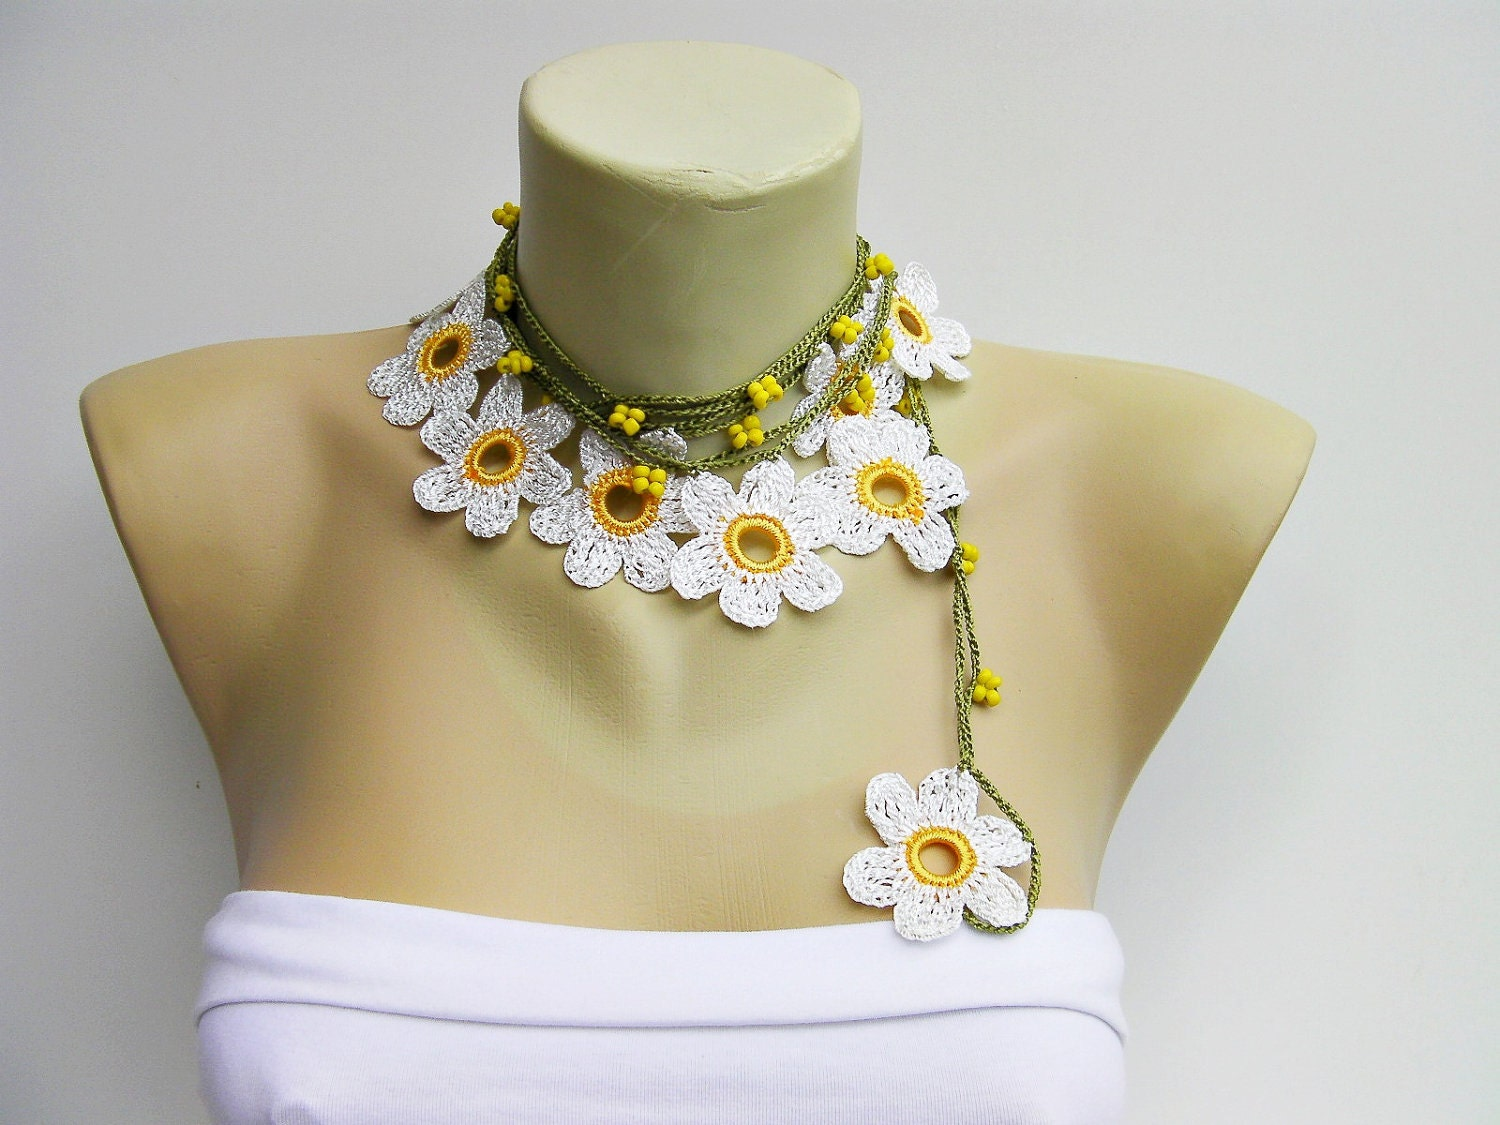 Crochet Necklace : CROCHET lariat necklace jewelry Crochet bead work by SenasShop